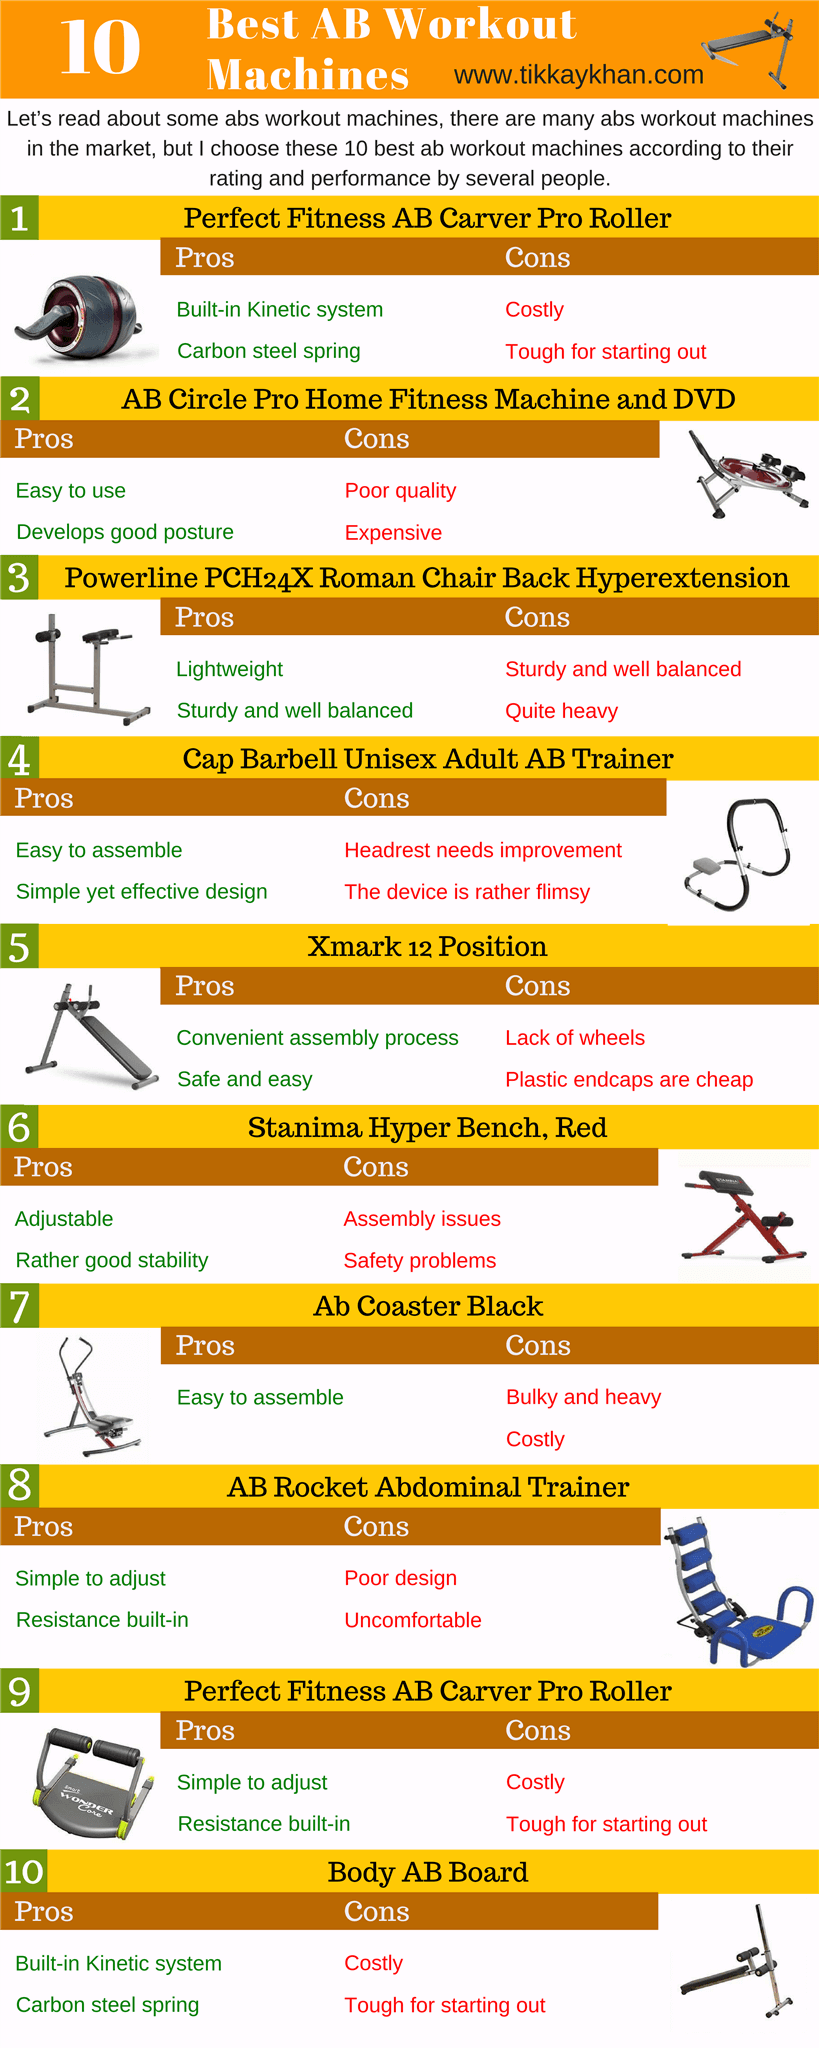 Best Abs workout machines